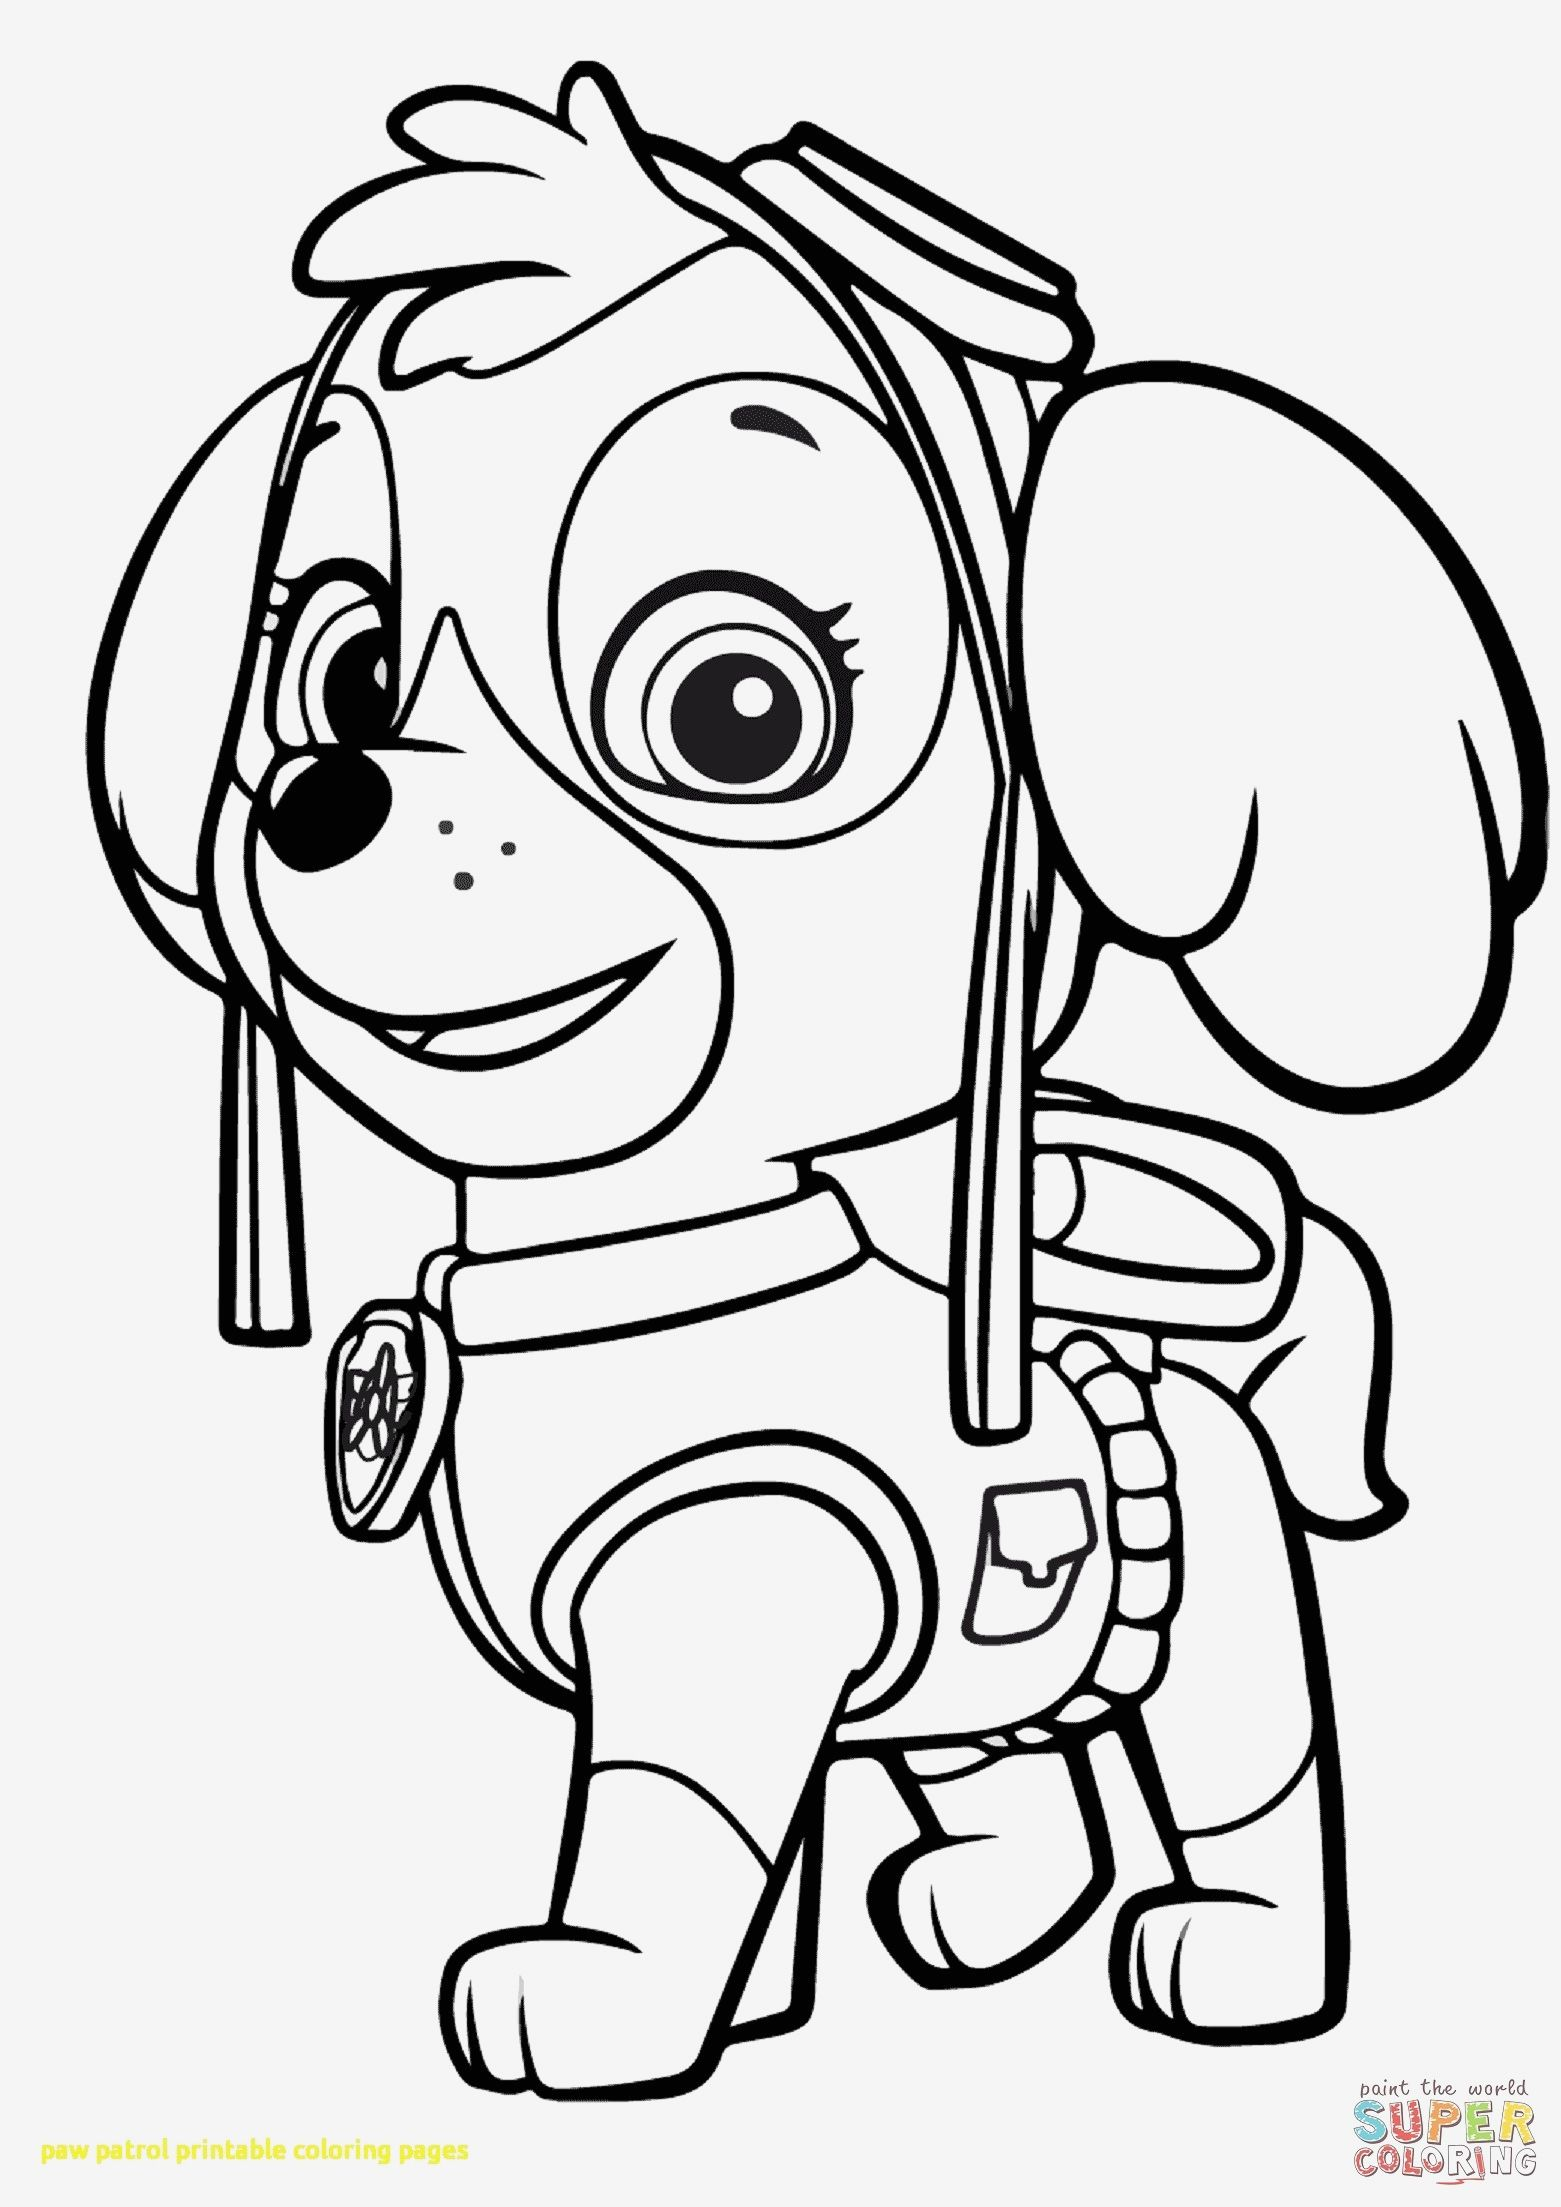 Paw Patrol Coloring Sheets New Photography Free Paw Patrol Coloring Pages Top Free Printable Paw Patrol Coloring Pages Paw Patrol Coloring Puppy Coloring Pages